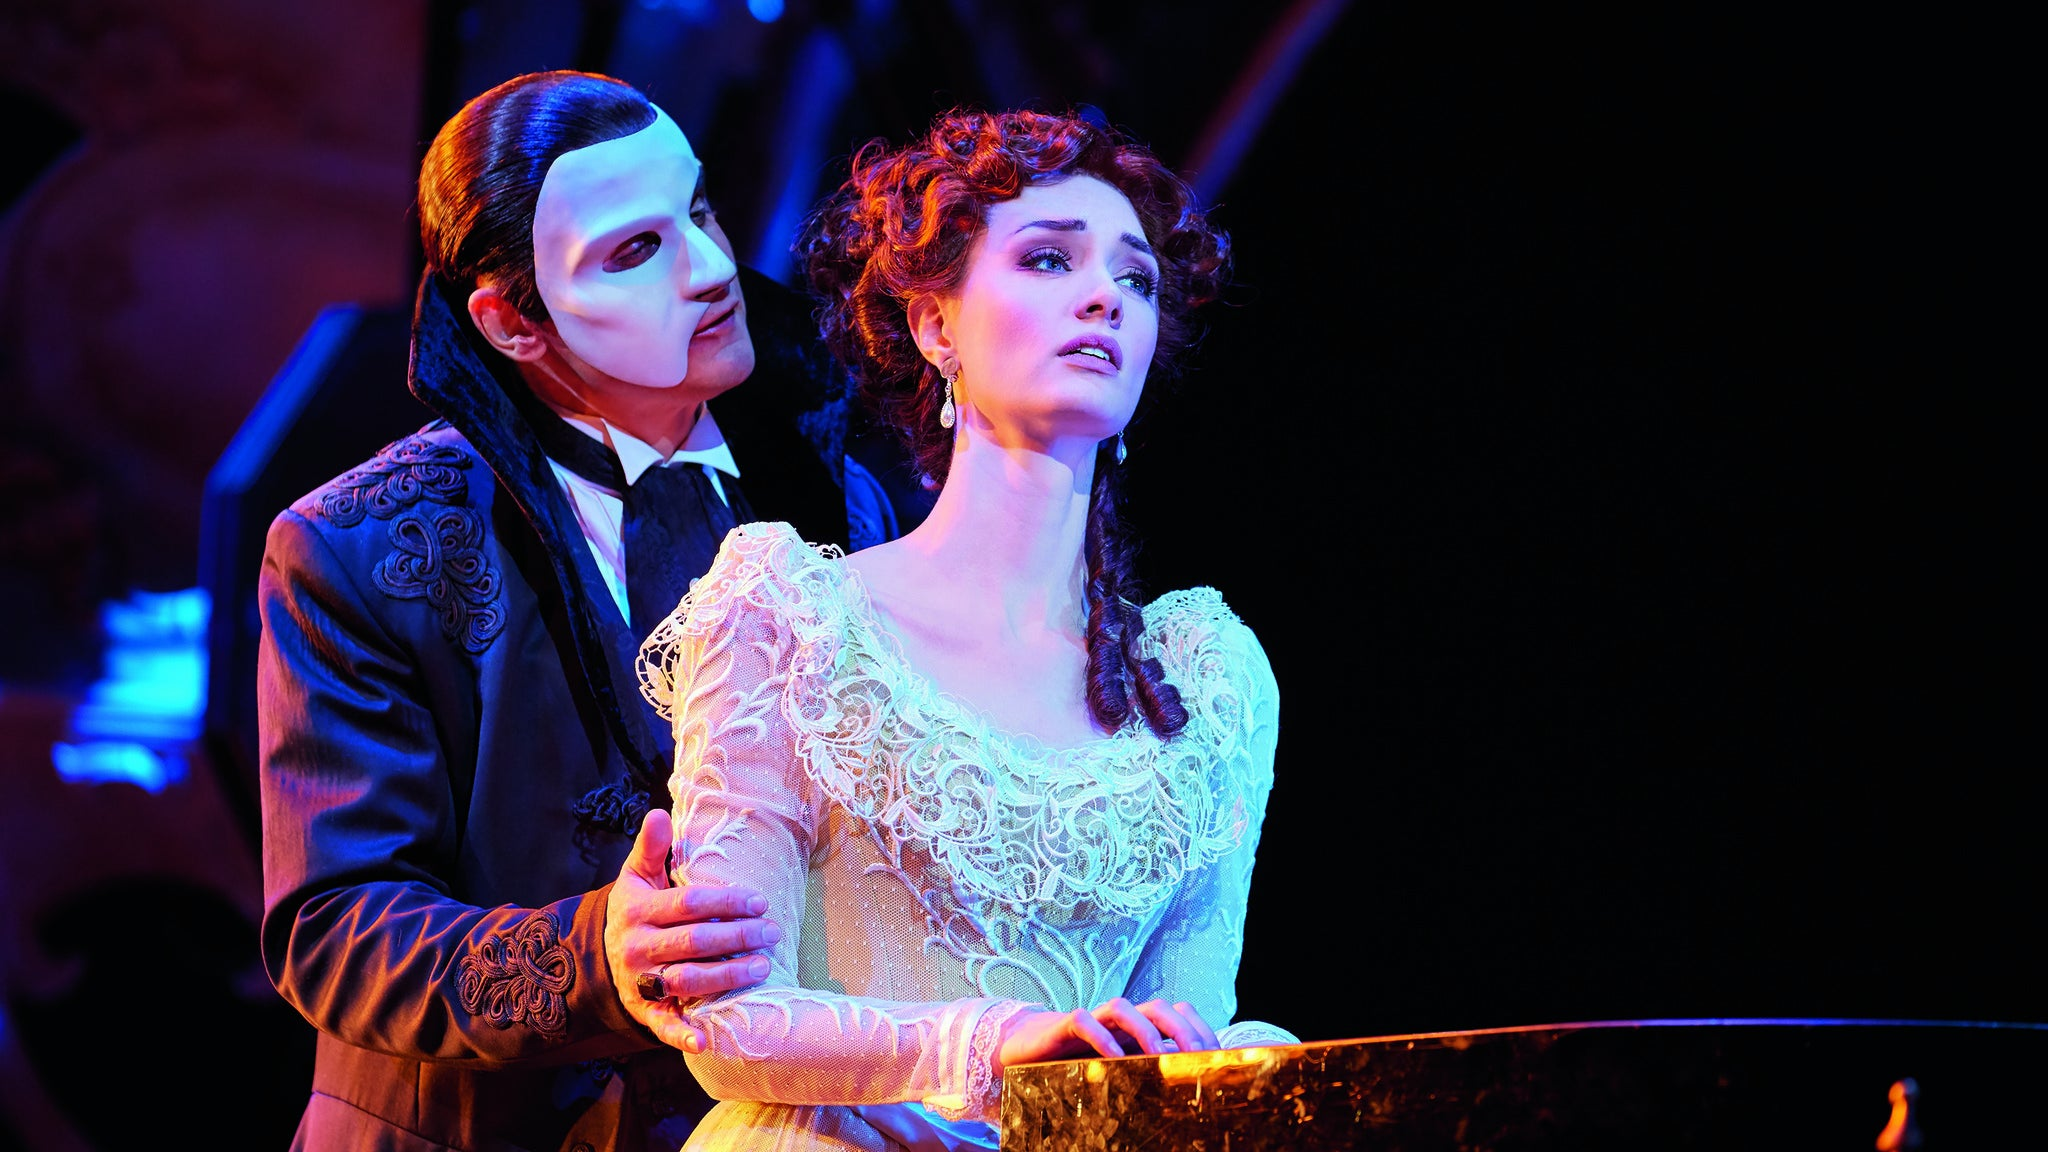 Love Never Dies at San Jose Center for the Performing Arts - San Jose, CA 95113